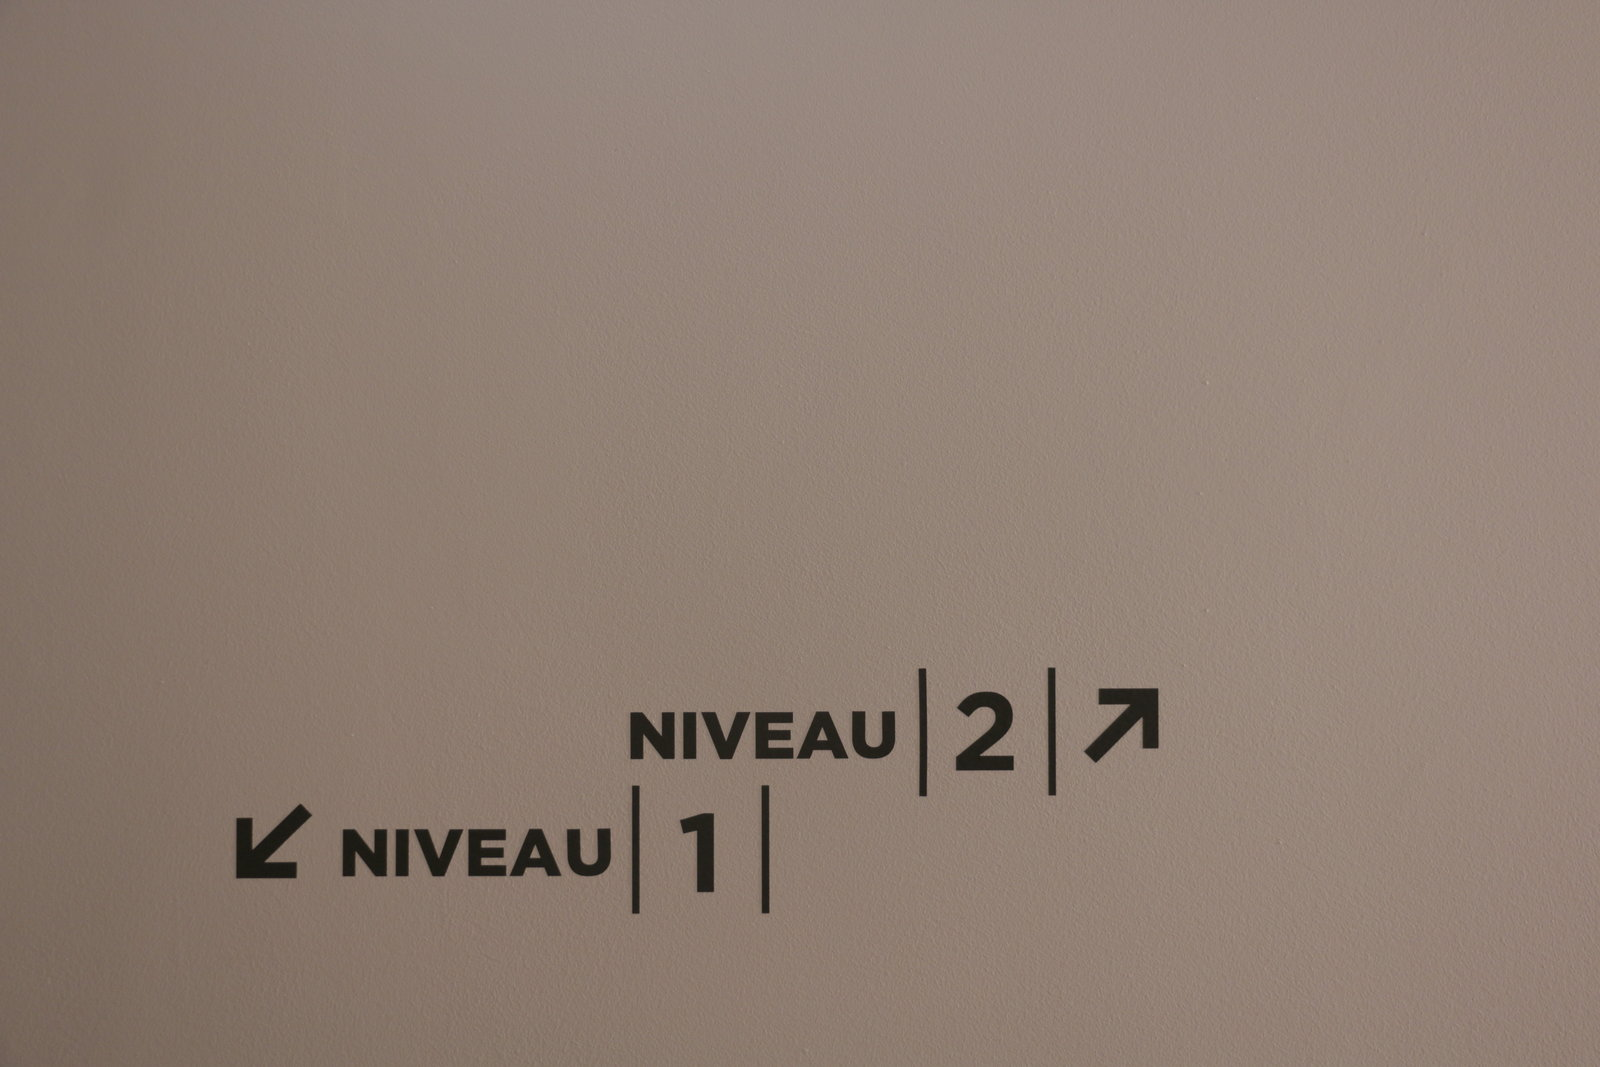 Waymark in Musee Picasso in Paris